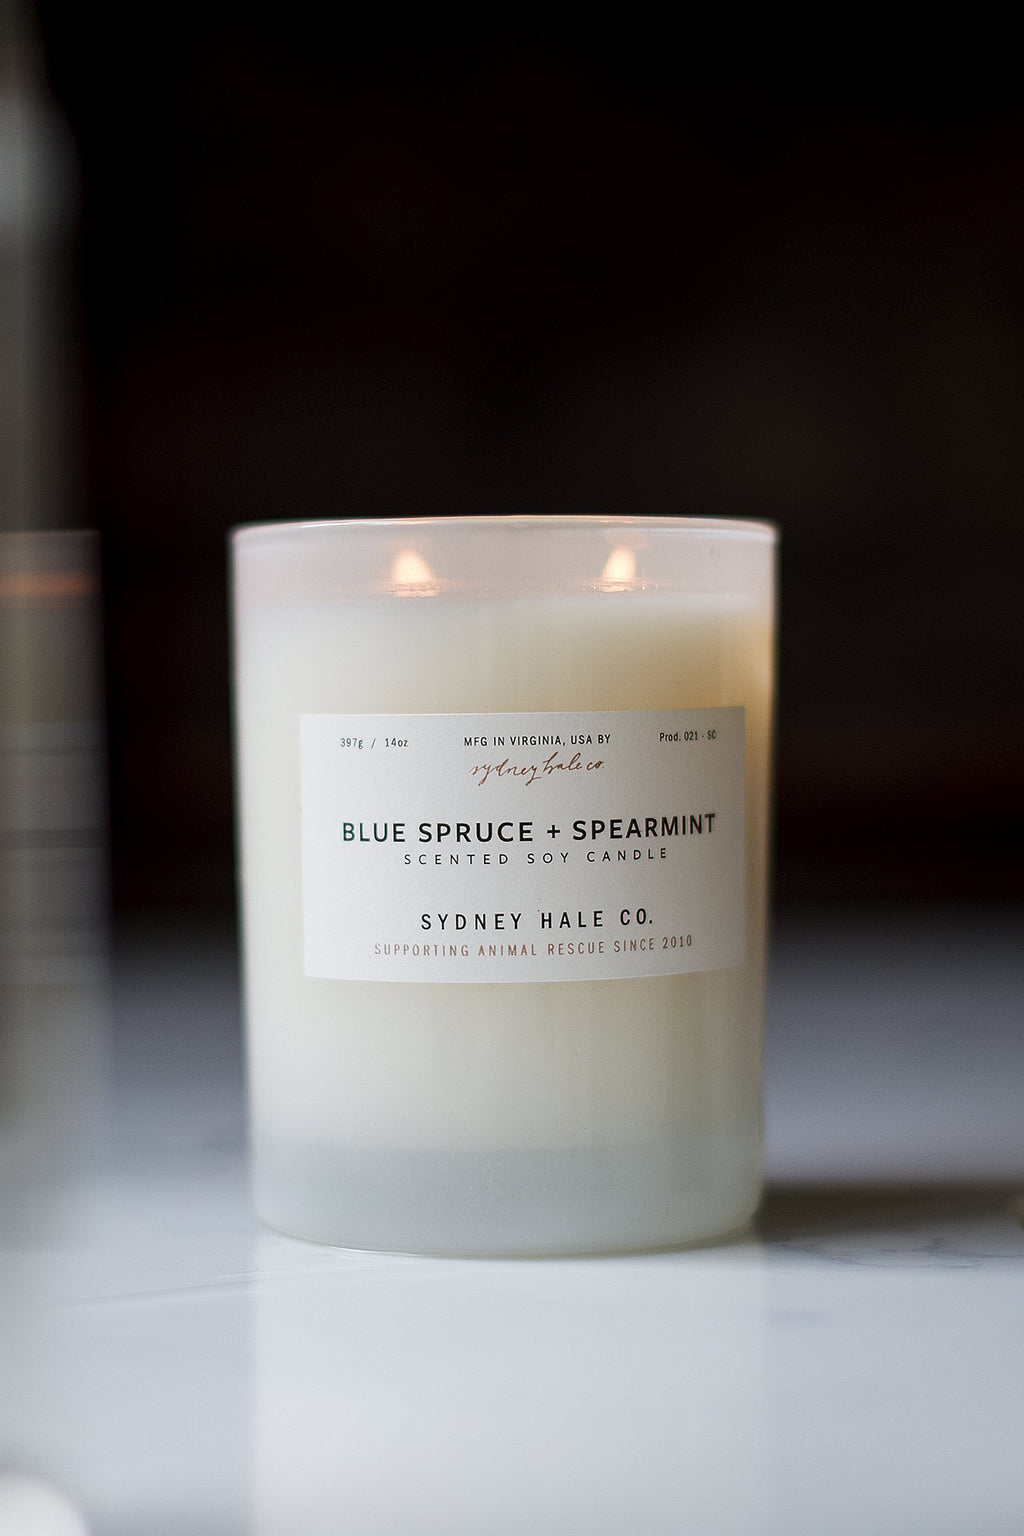 Sydney Hale Co. Blue Spruce + Spearmint Candle